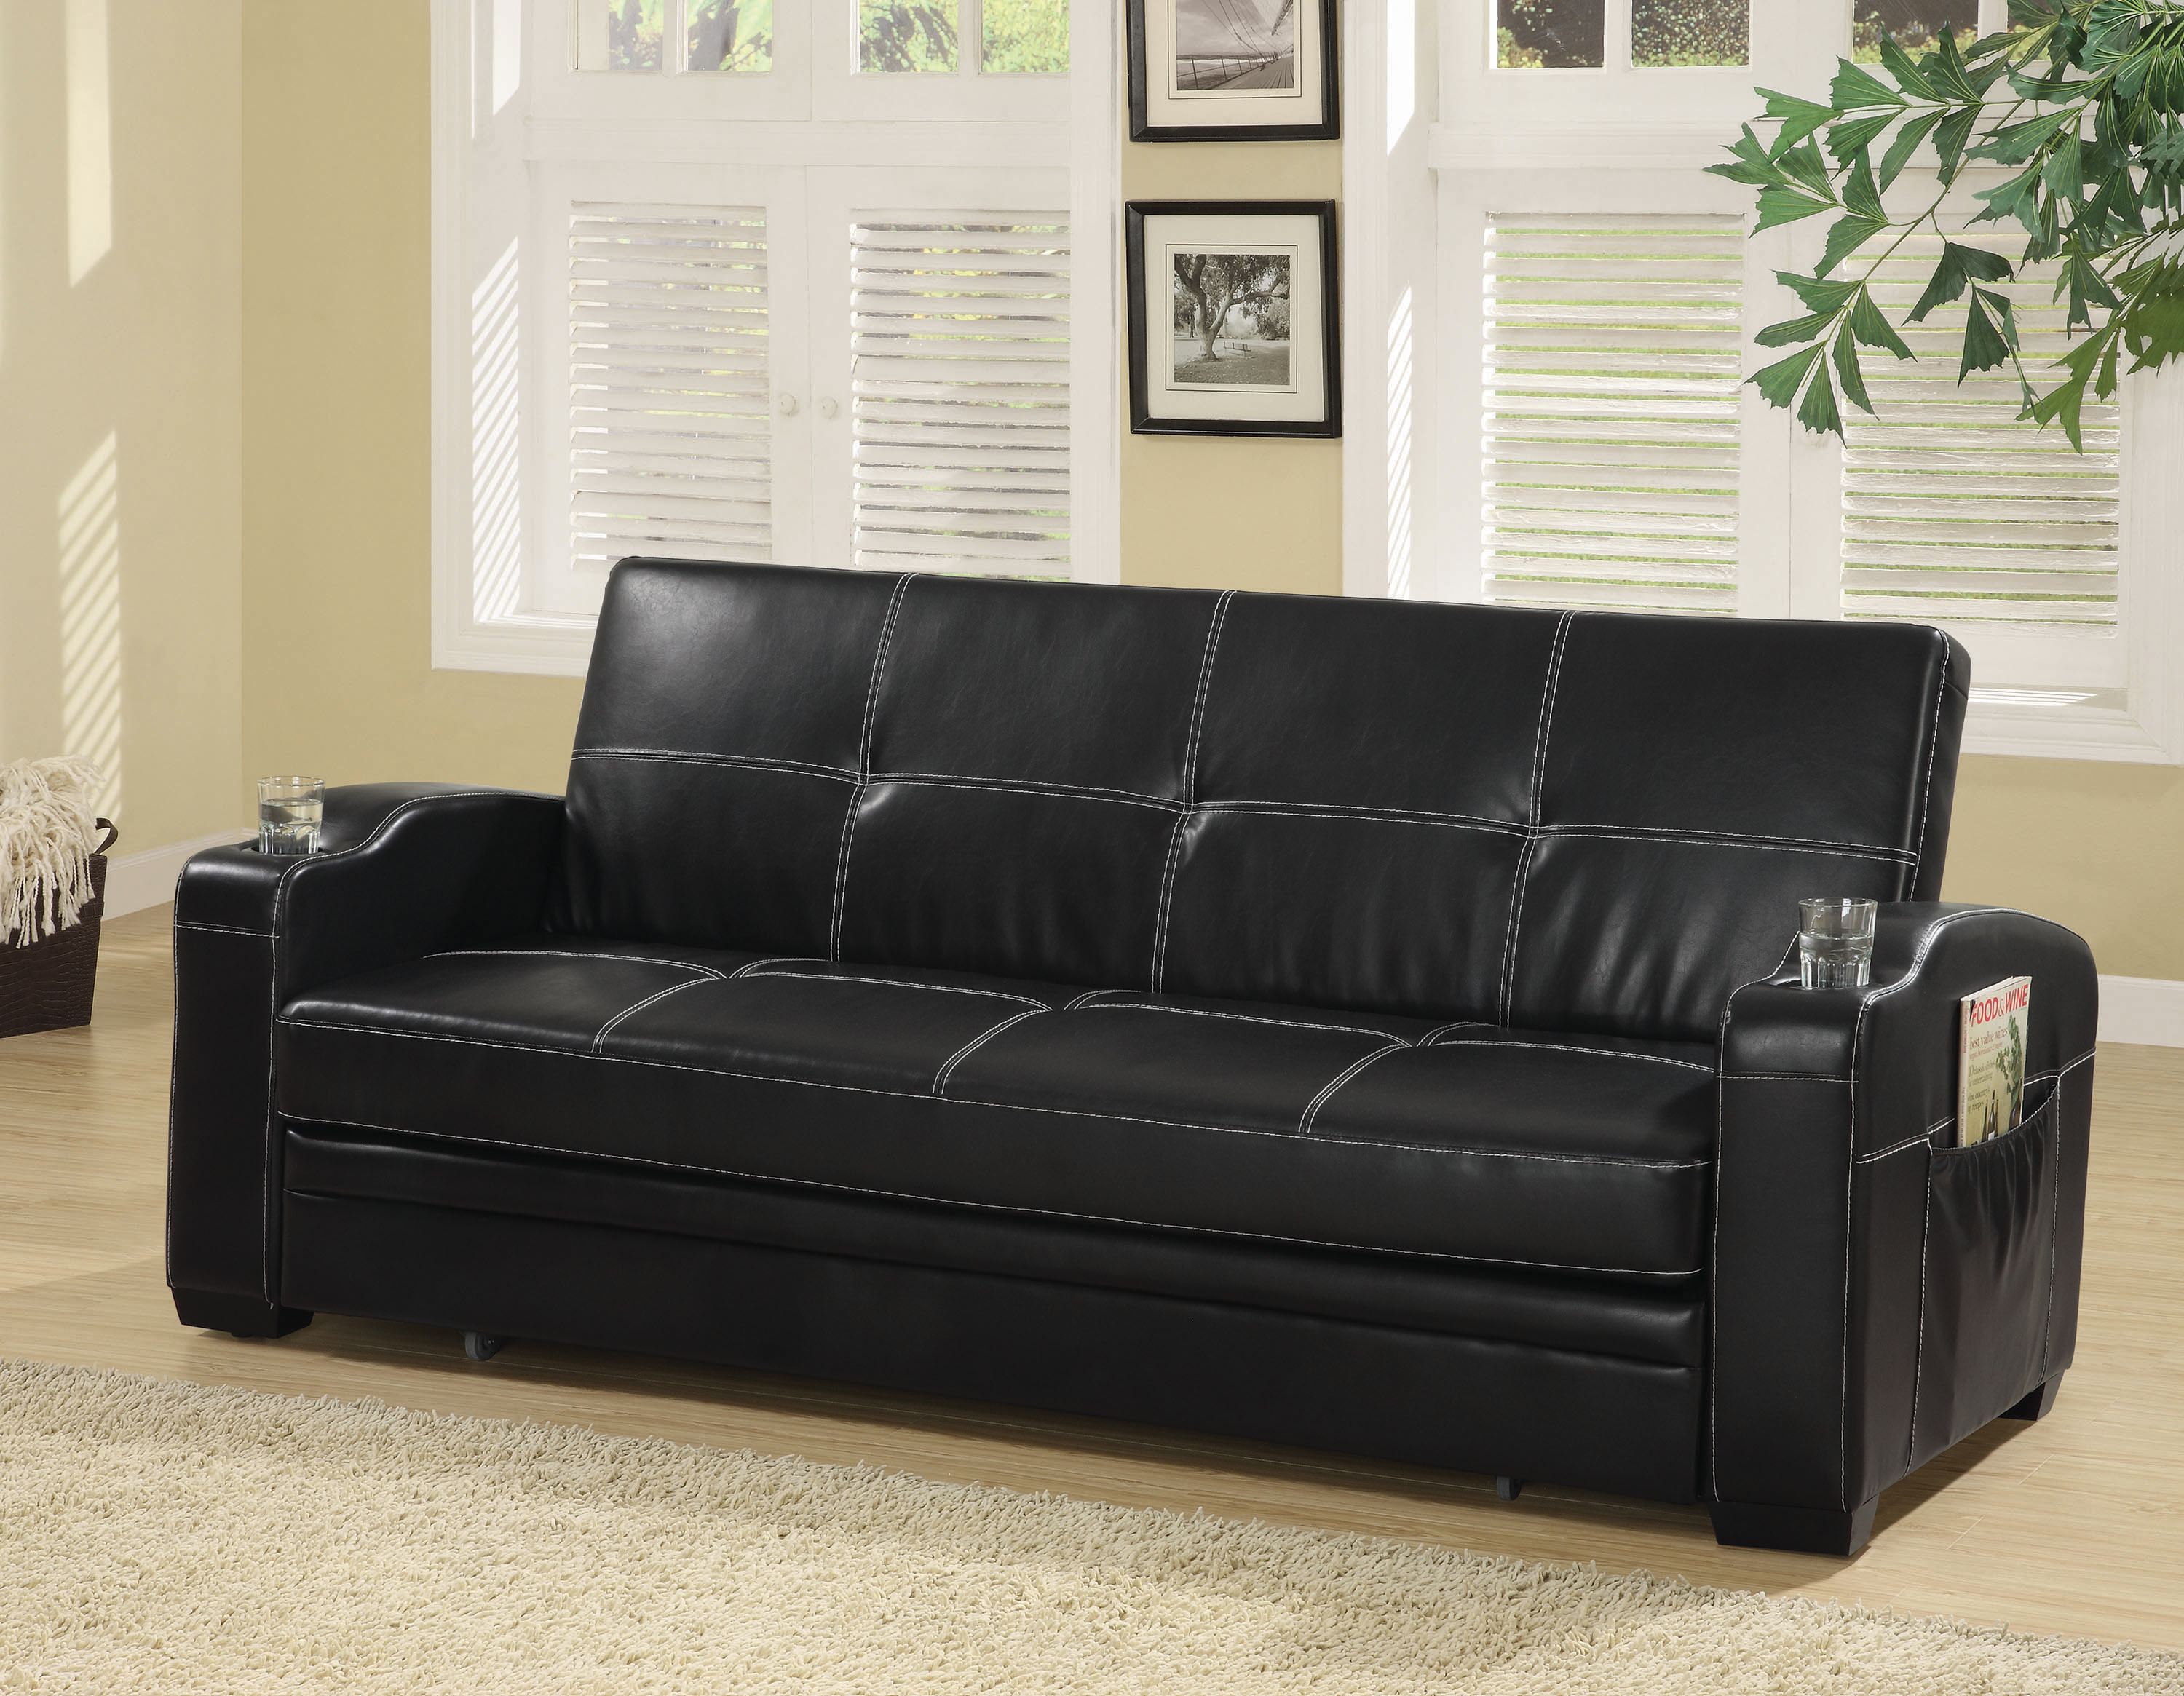 Avril upholstered sleeper sofa bed with cup holders black